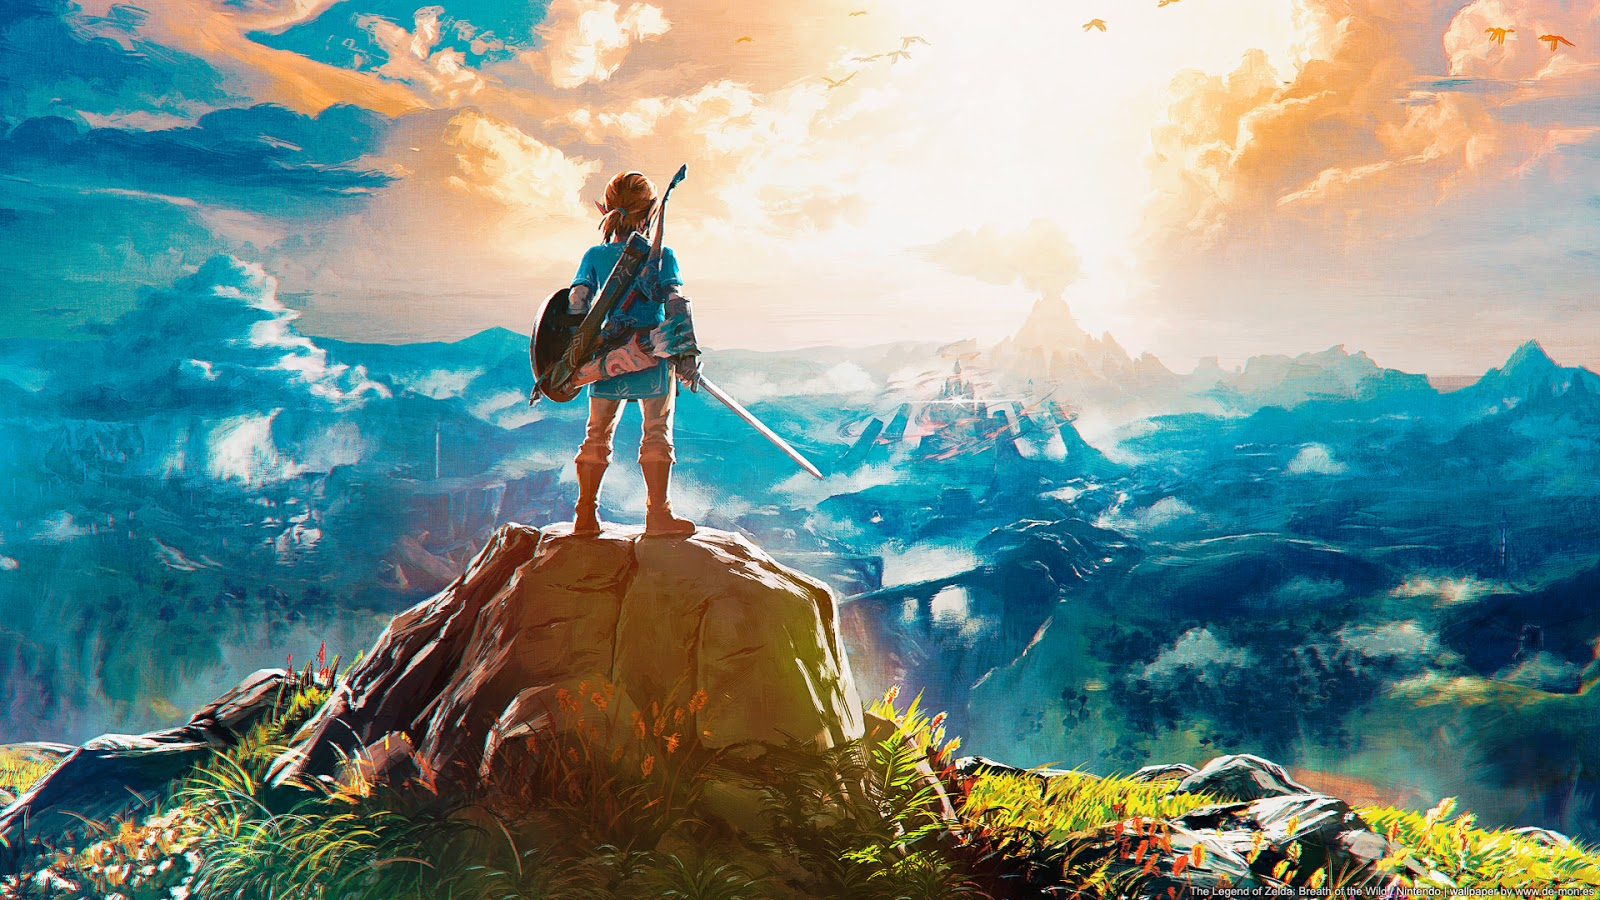 Breath Of The Wild Screensaver: Nintendo Switch (System Update 4.0.0)